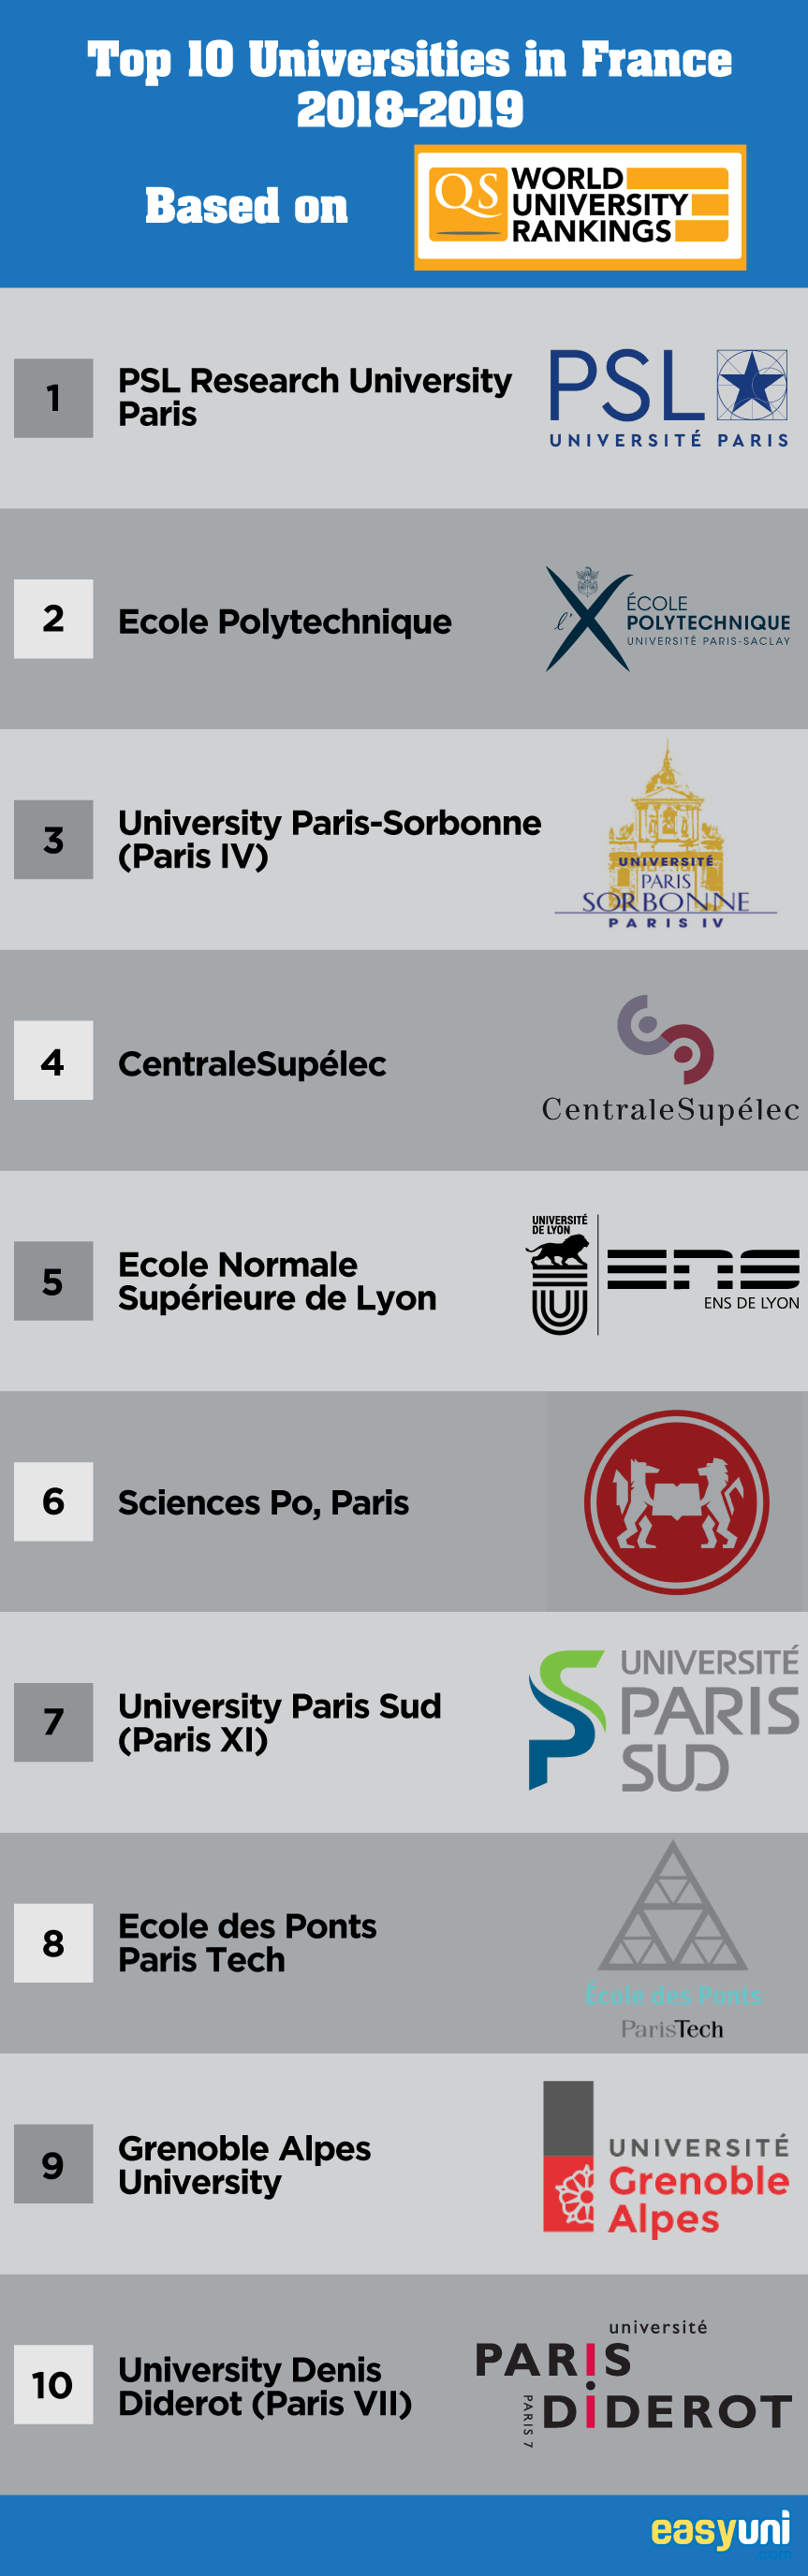 Top 10 Universities in France 2019